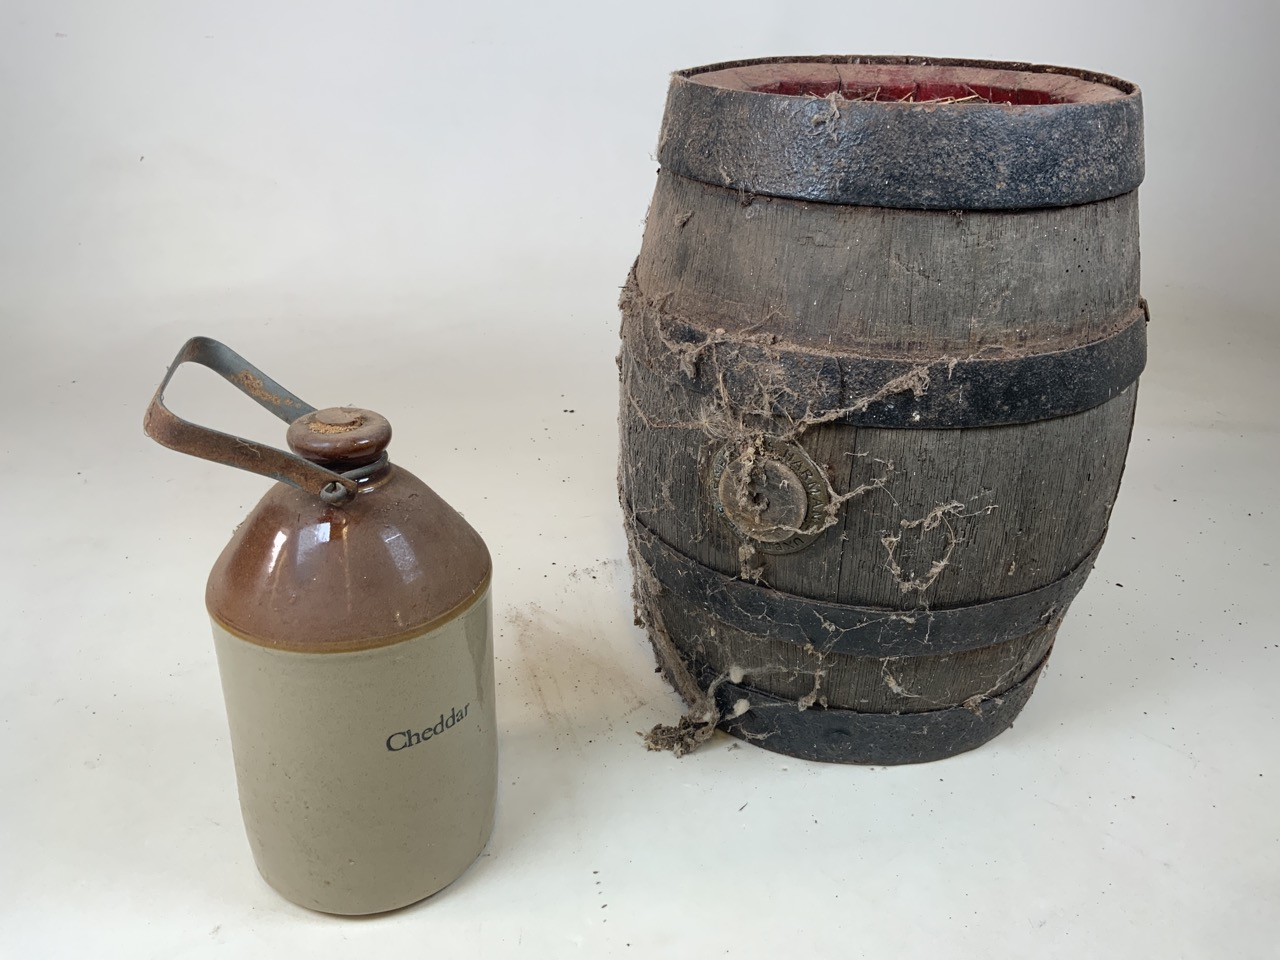 An old coopered barrel together with a cider flagon with metal handle from Cheddar Barrel W:34cm x - Image 2 of 3